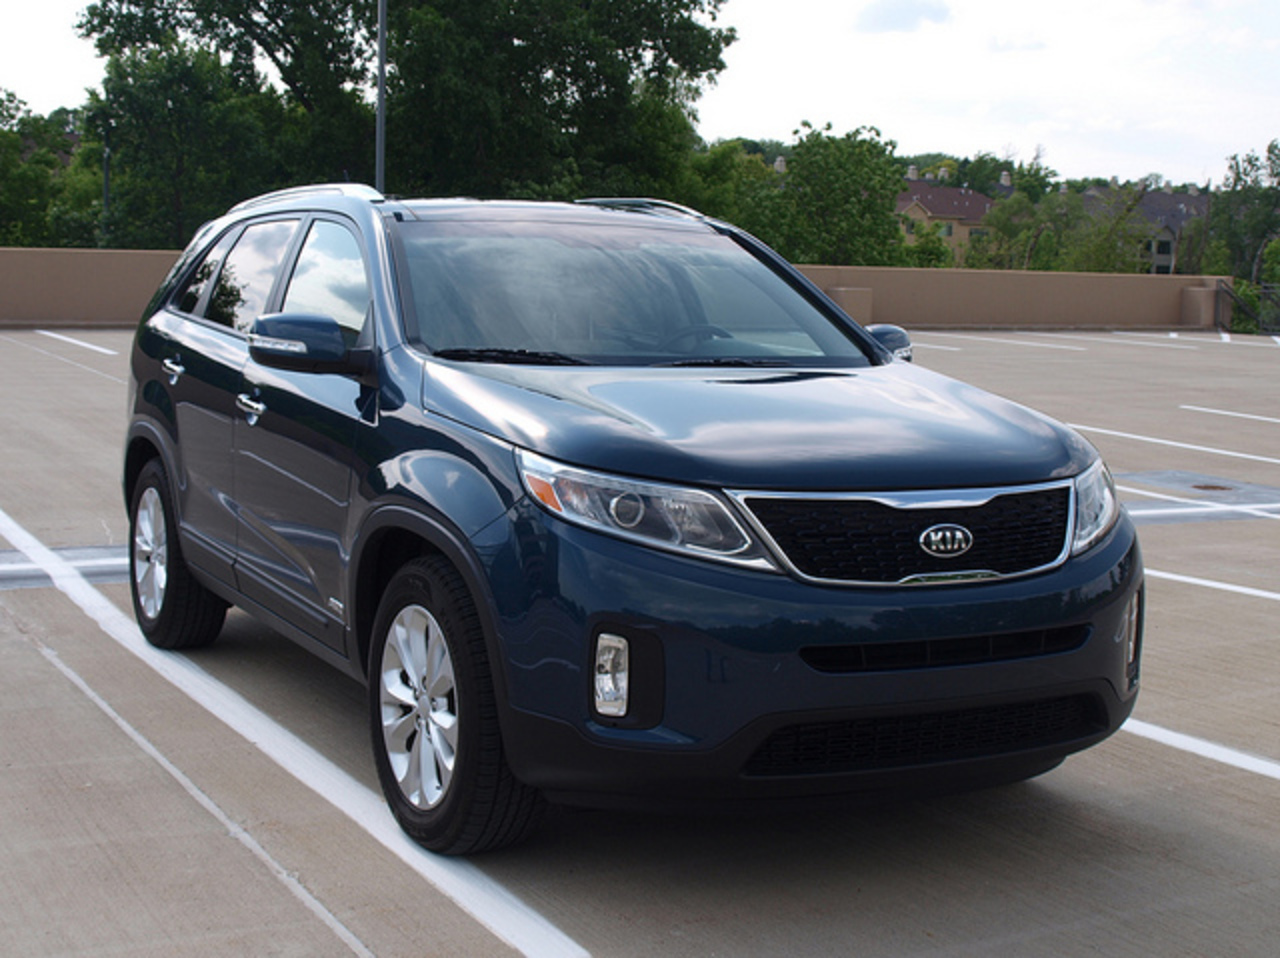 2014 Kia Sorento EX V6 AWD 4 | Flickr - Photo Sharing!